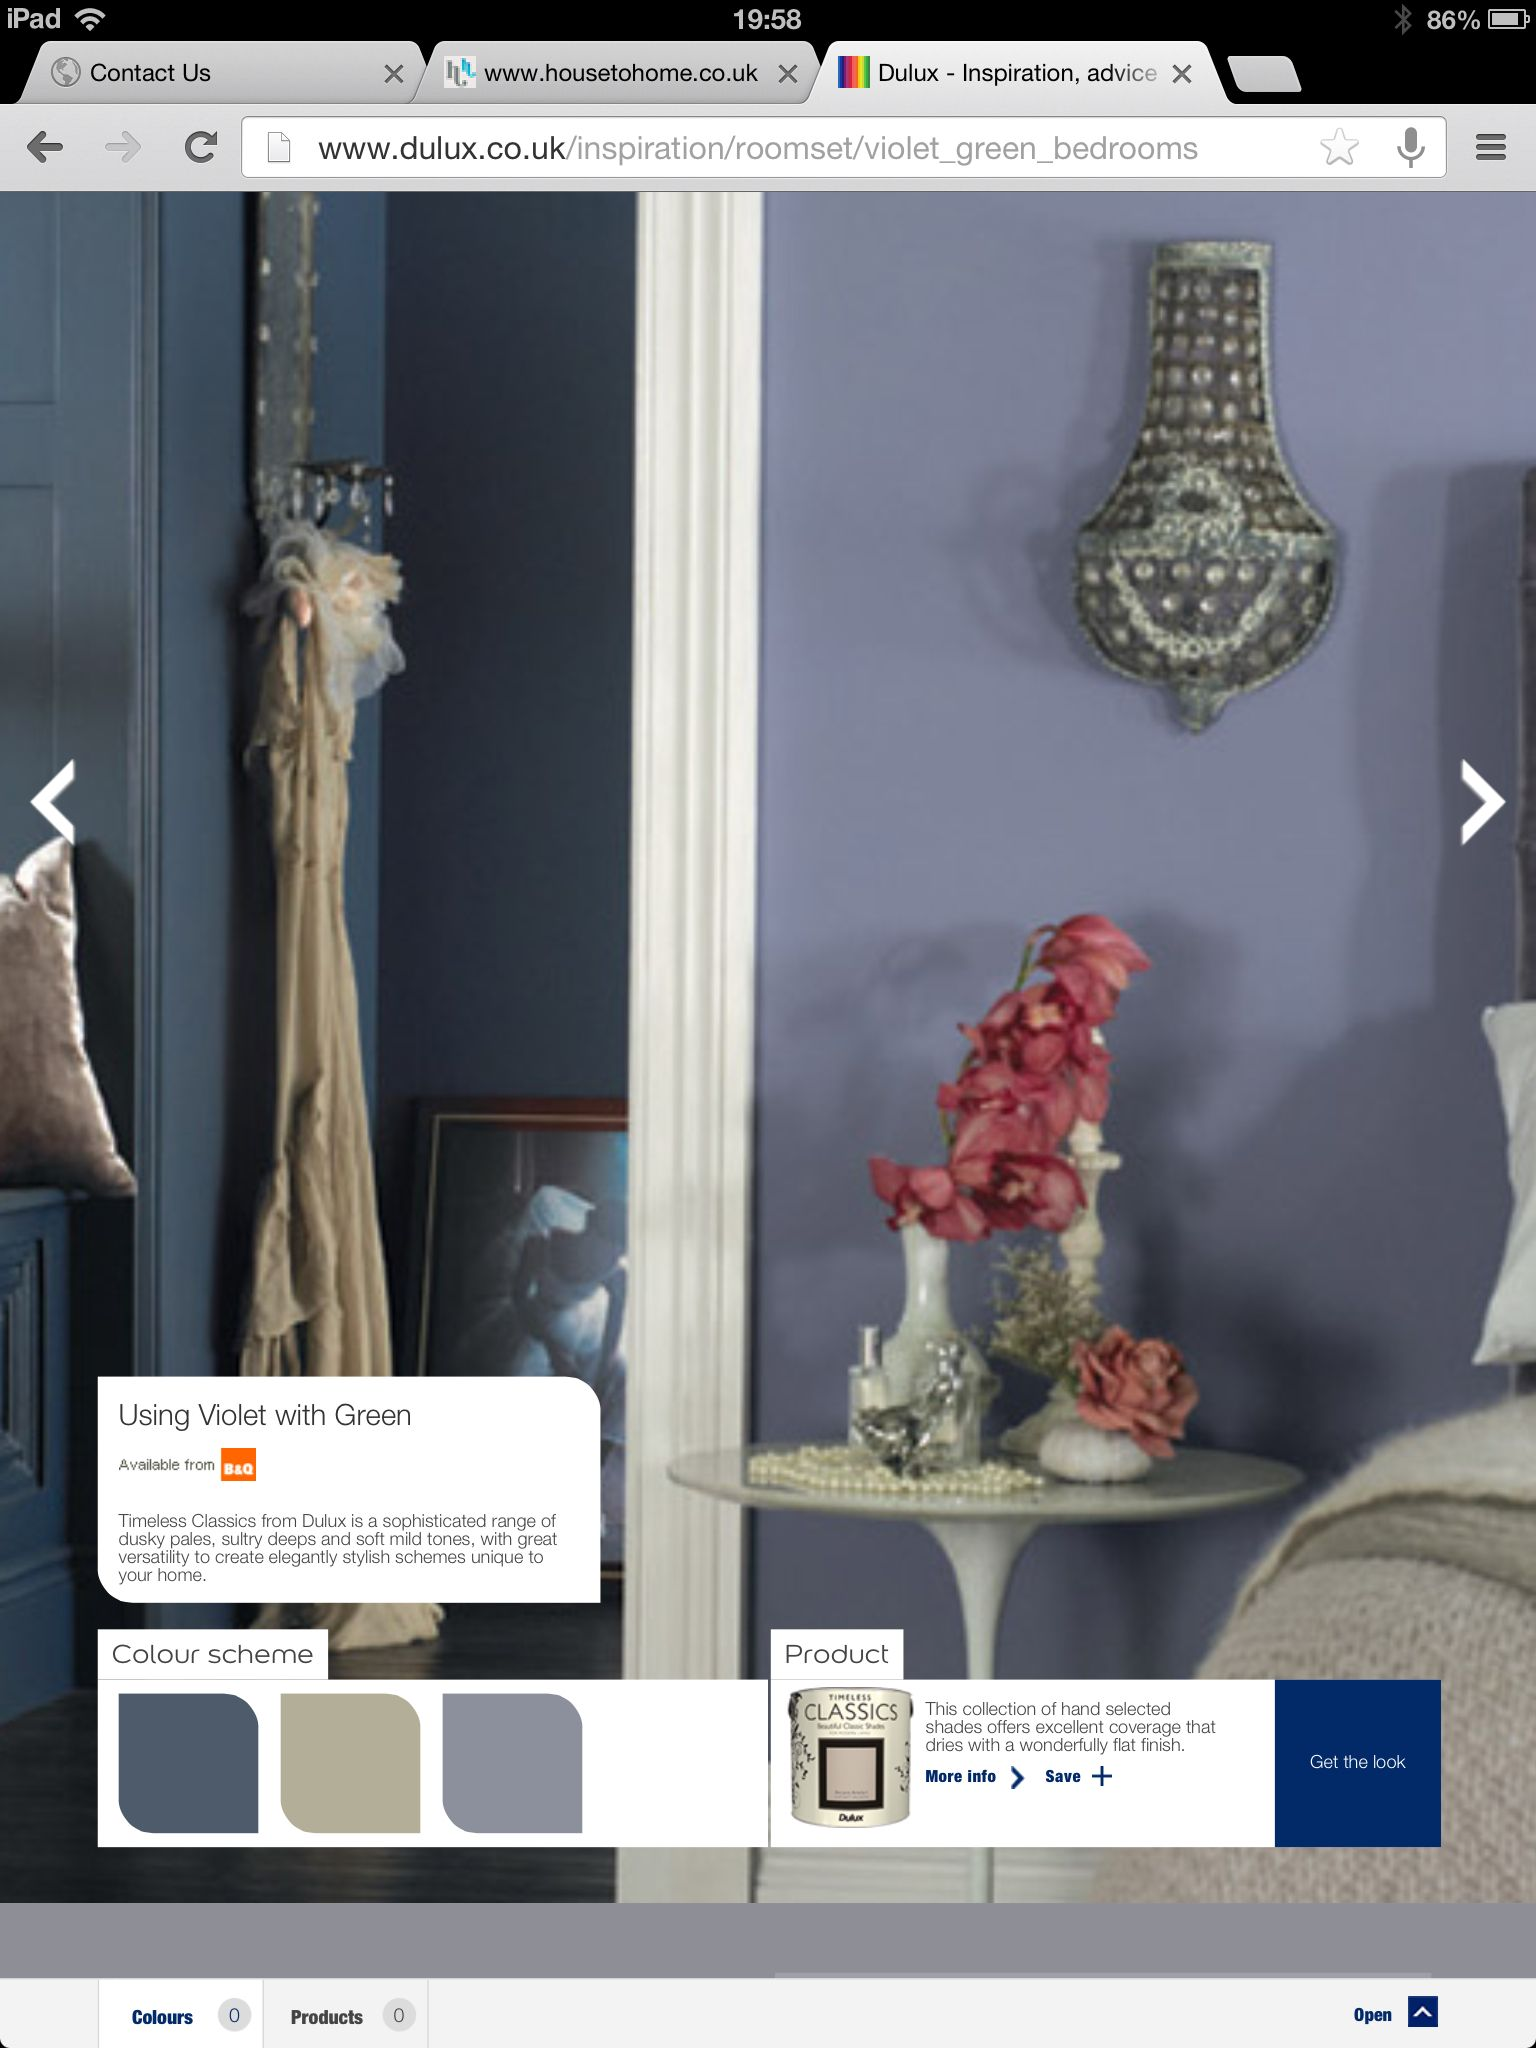 Dulux pressed thistle | house | Blue bedroom, Home decor ...